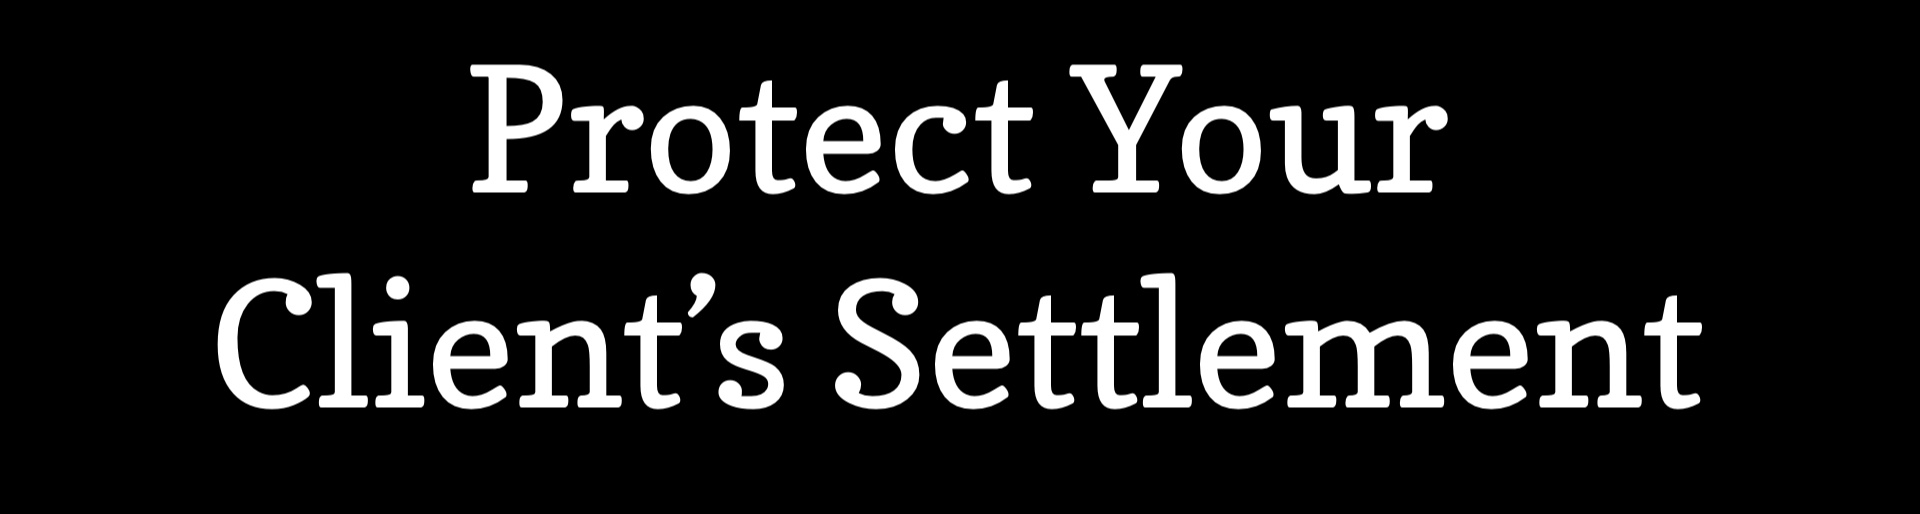 Protect Your Client's Settlement